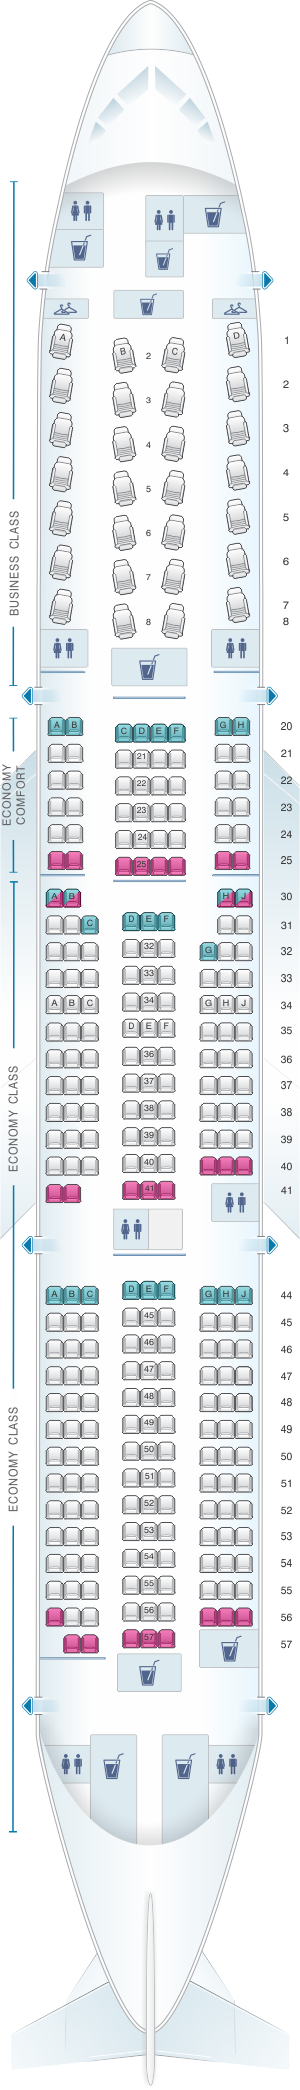 Seat map for Delta Air Lines Boeing B777 200LR